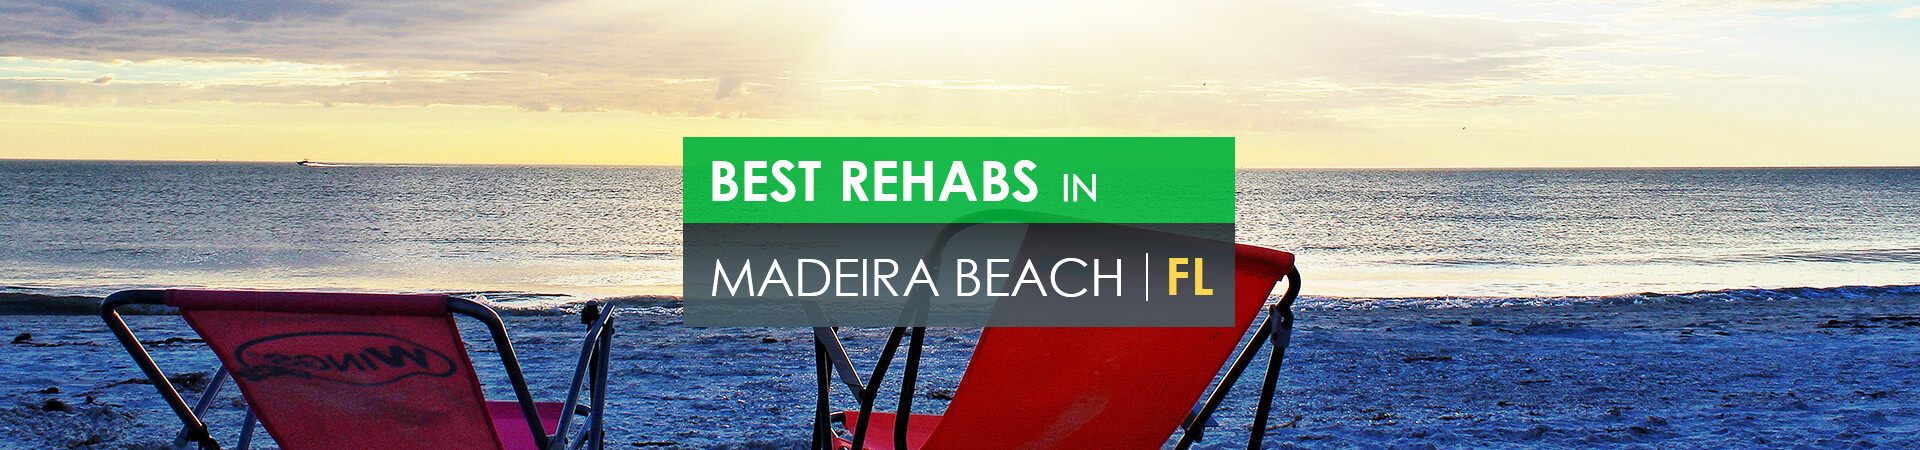 Best rehabs in Madeira Beach, FL